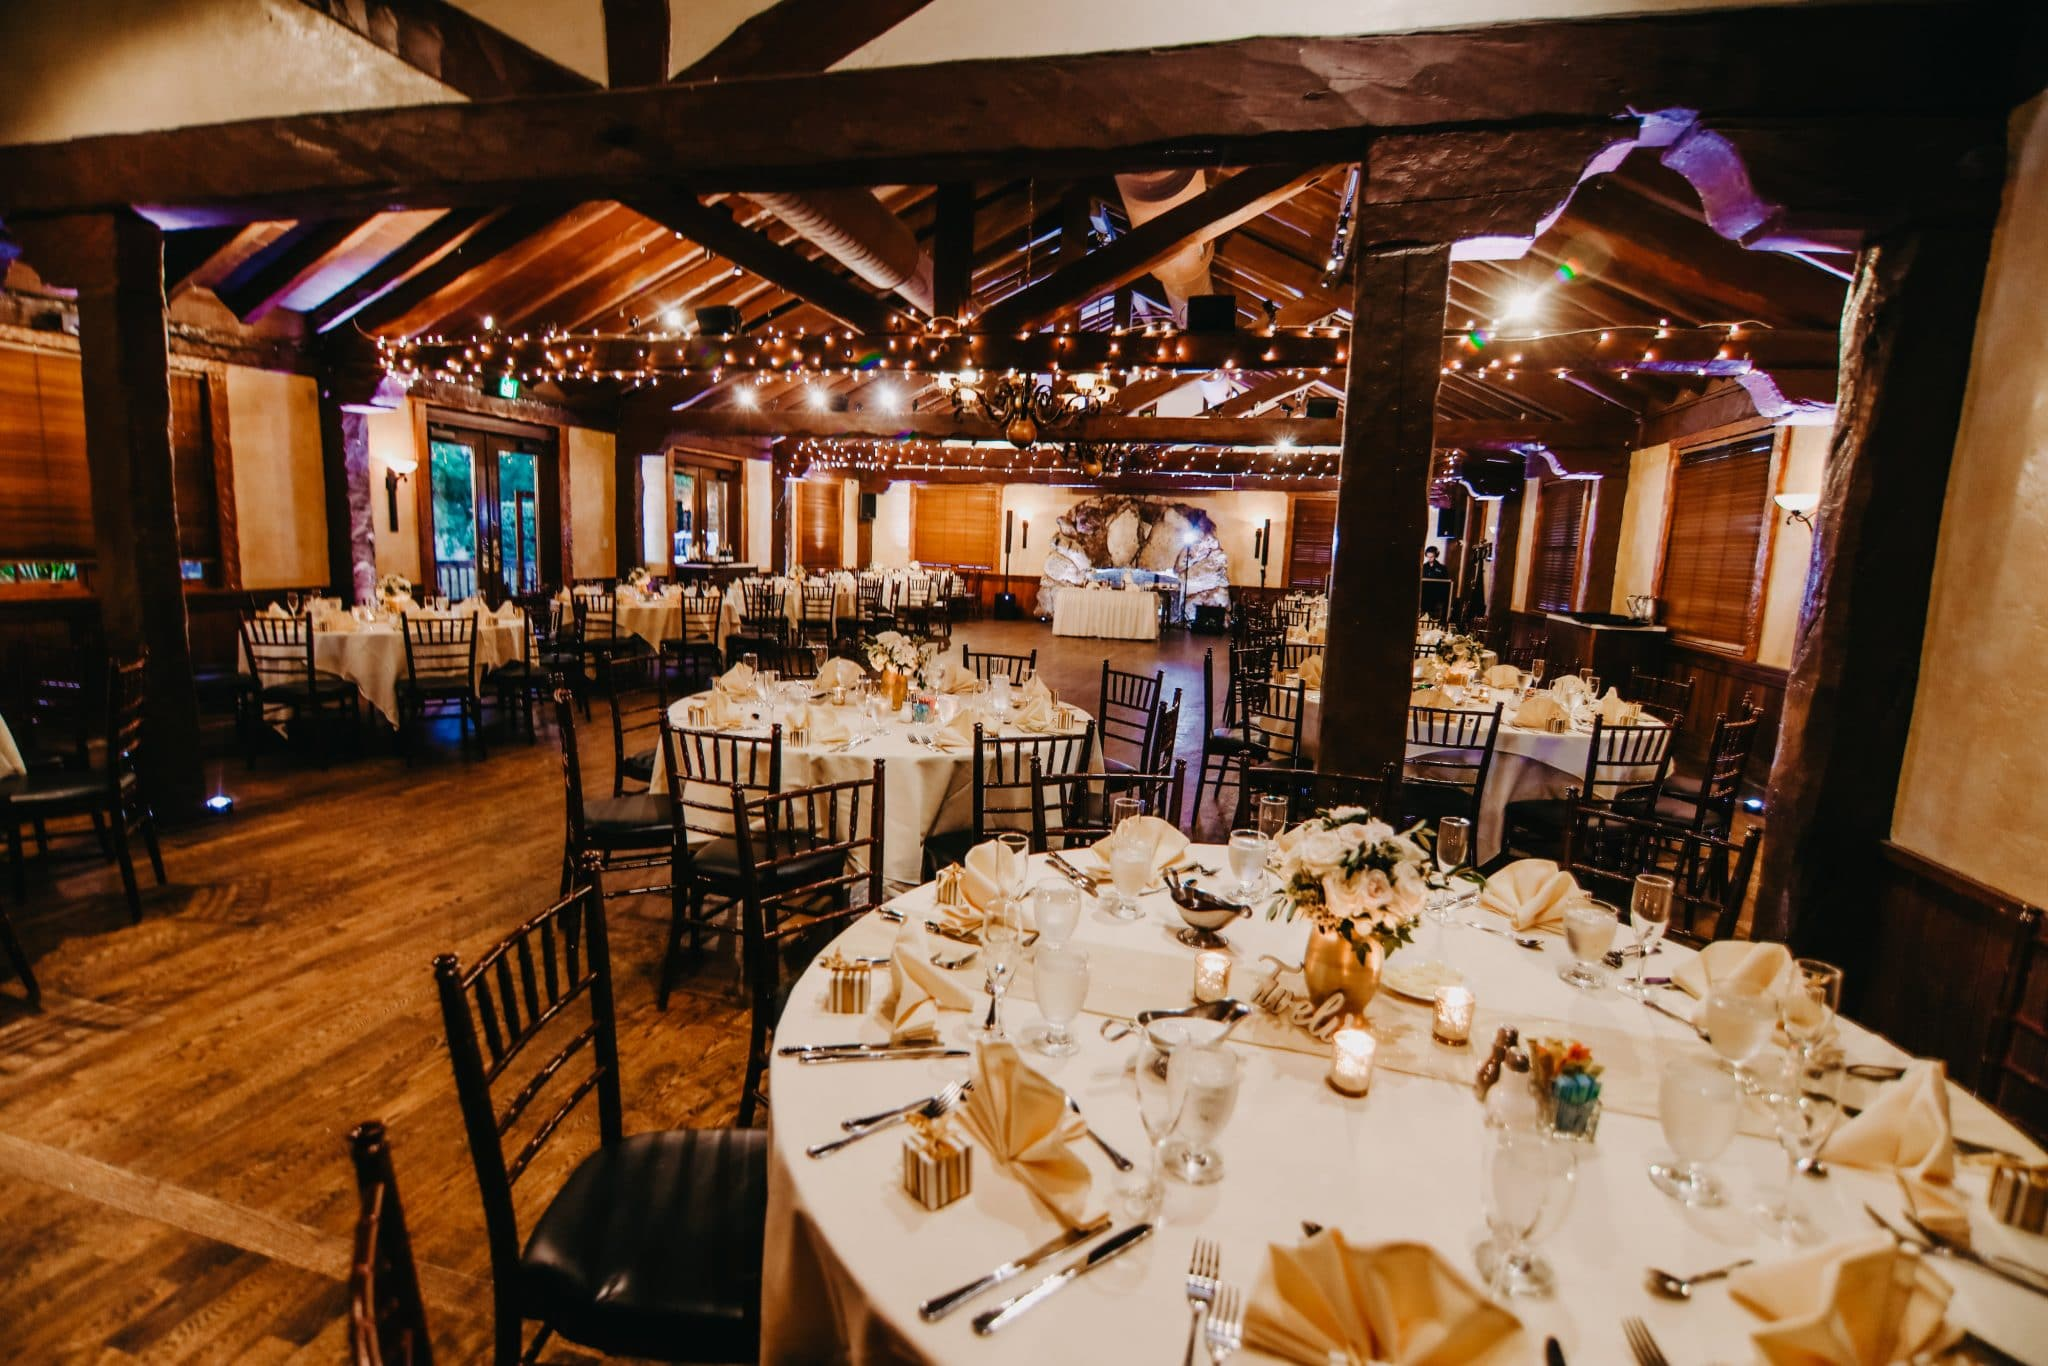 Historic Dubsdread Ballroom - large reception room with exposed beams wrapped in fairy lights